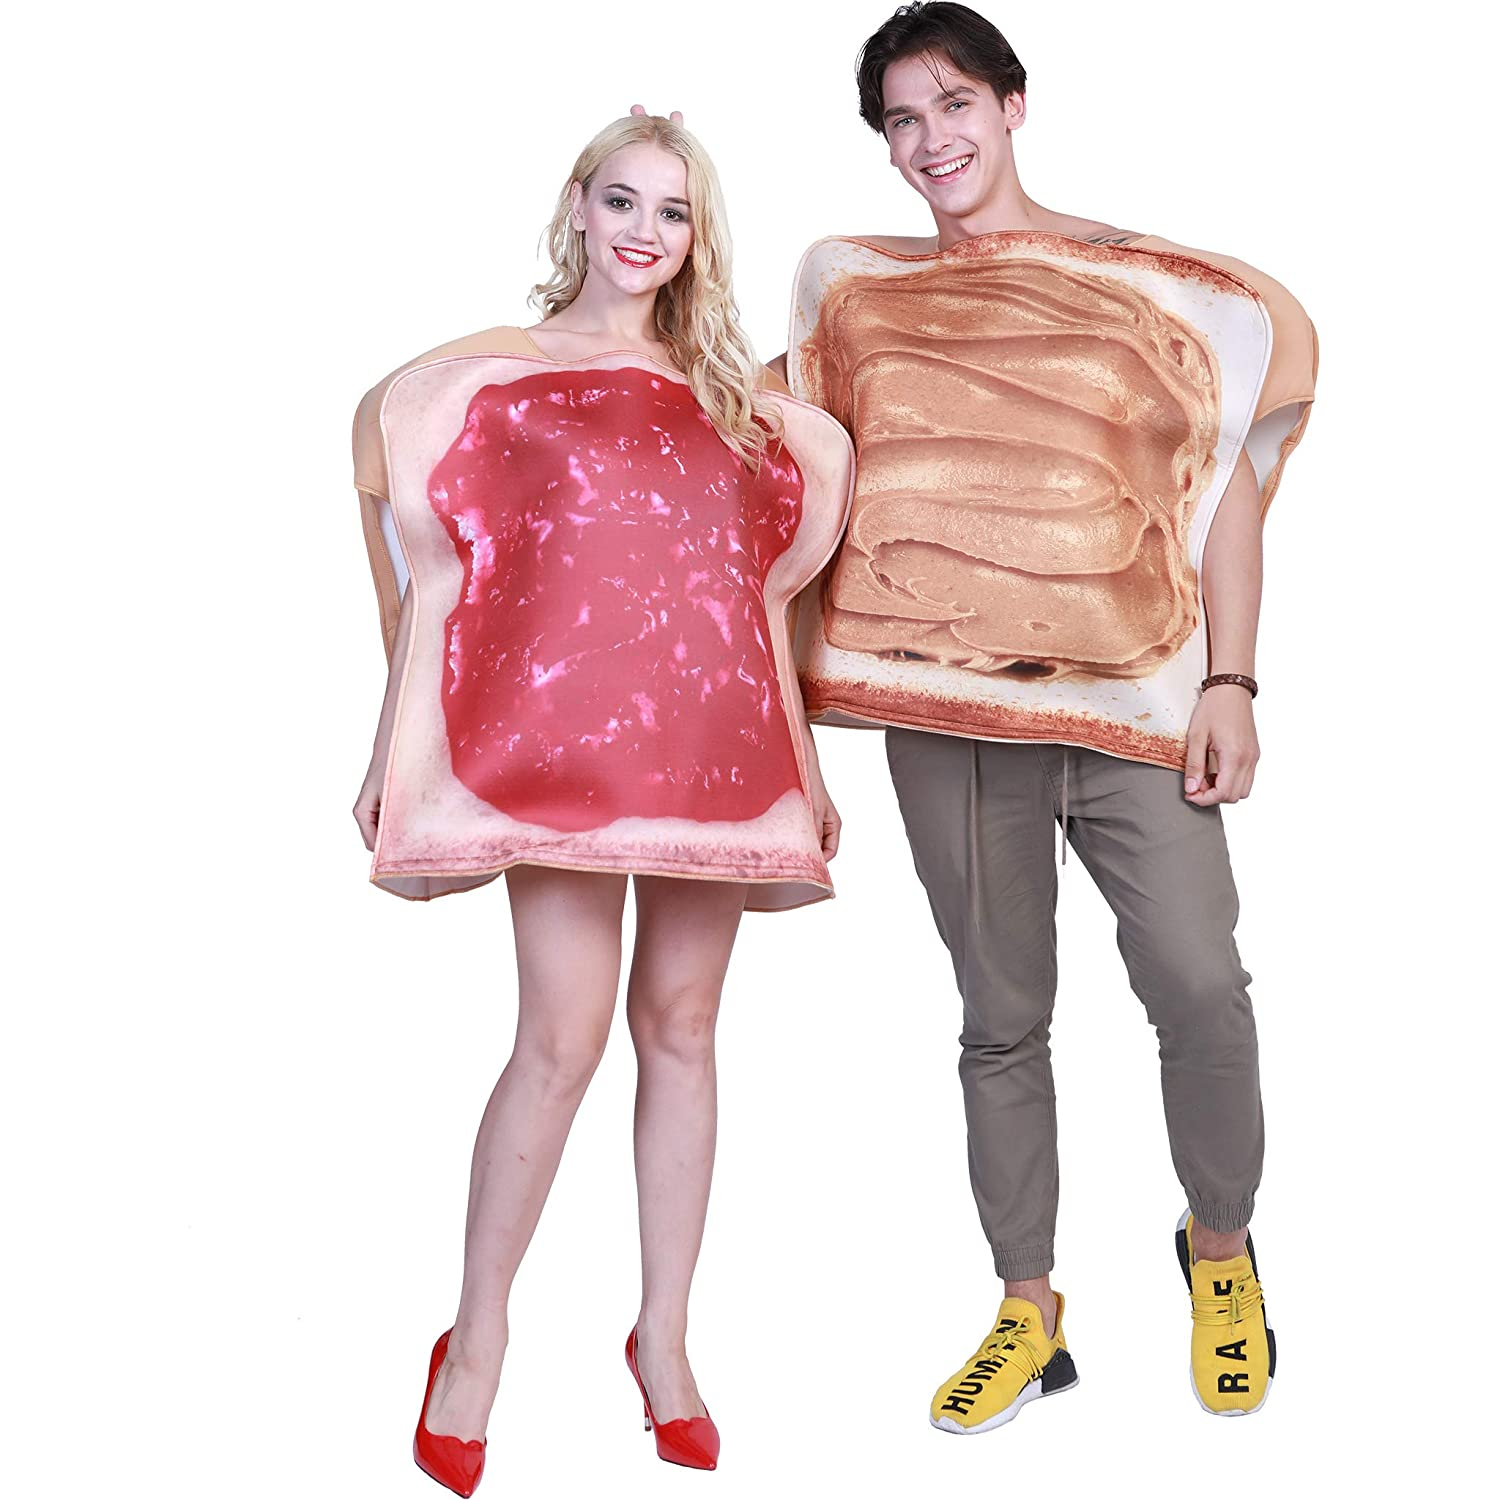 Halloween Costumes For Couples Funny.Eraspooky Couples Halloween Costumes For Adults Plus Size Funny Food Peanut Butter And Jelly Costume Cosplay Party